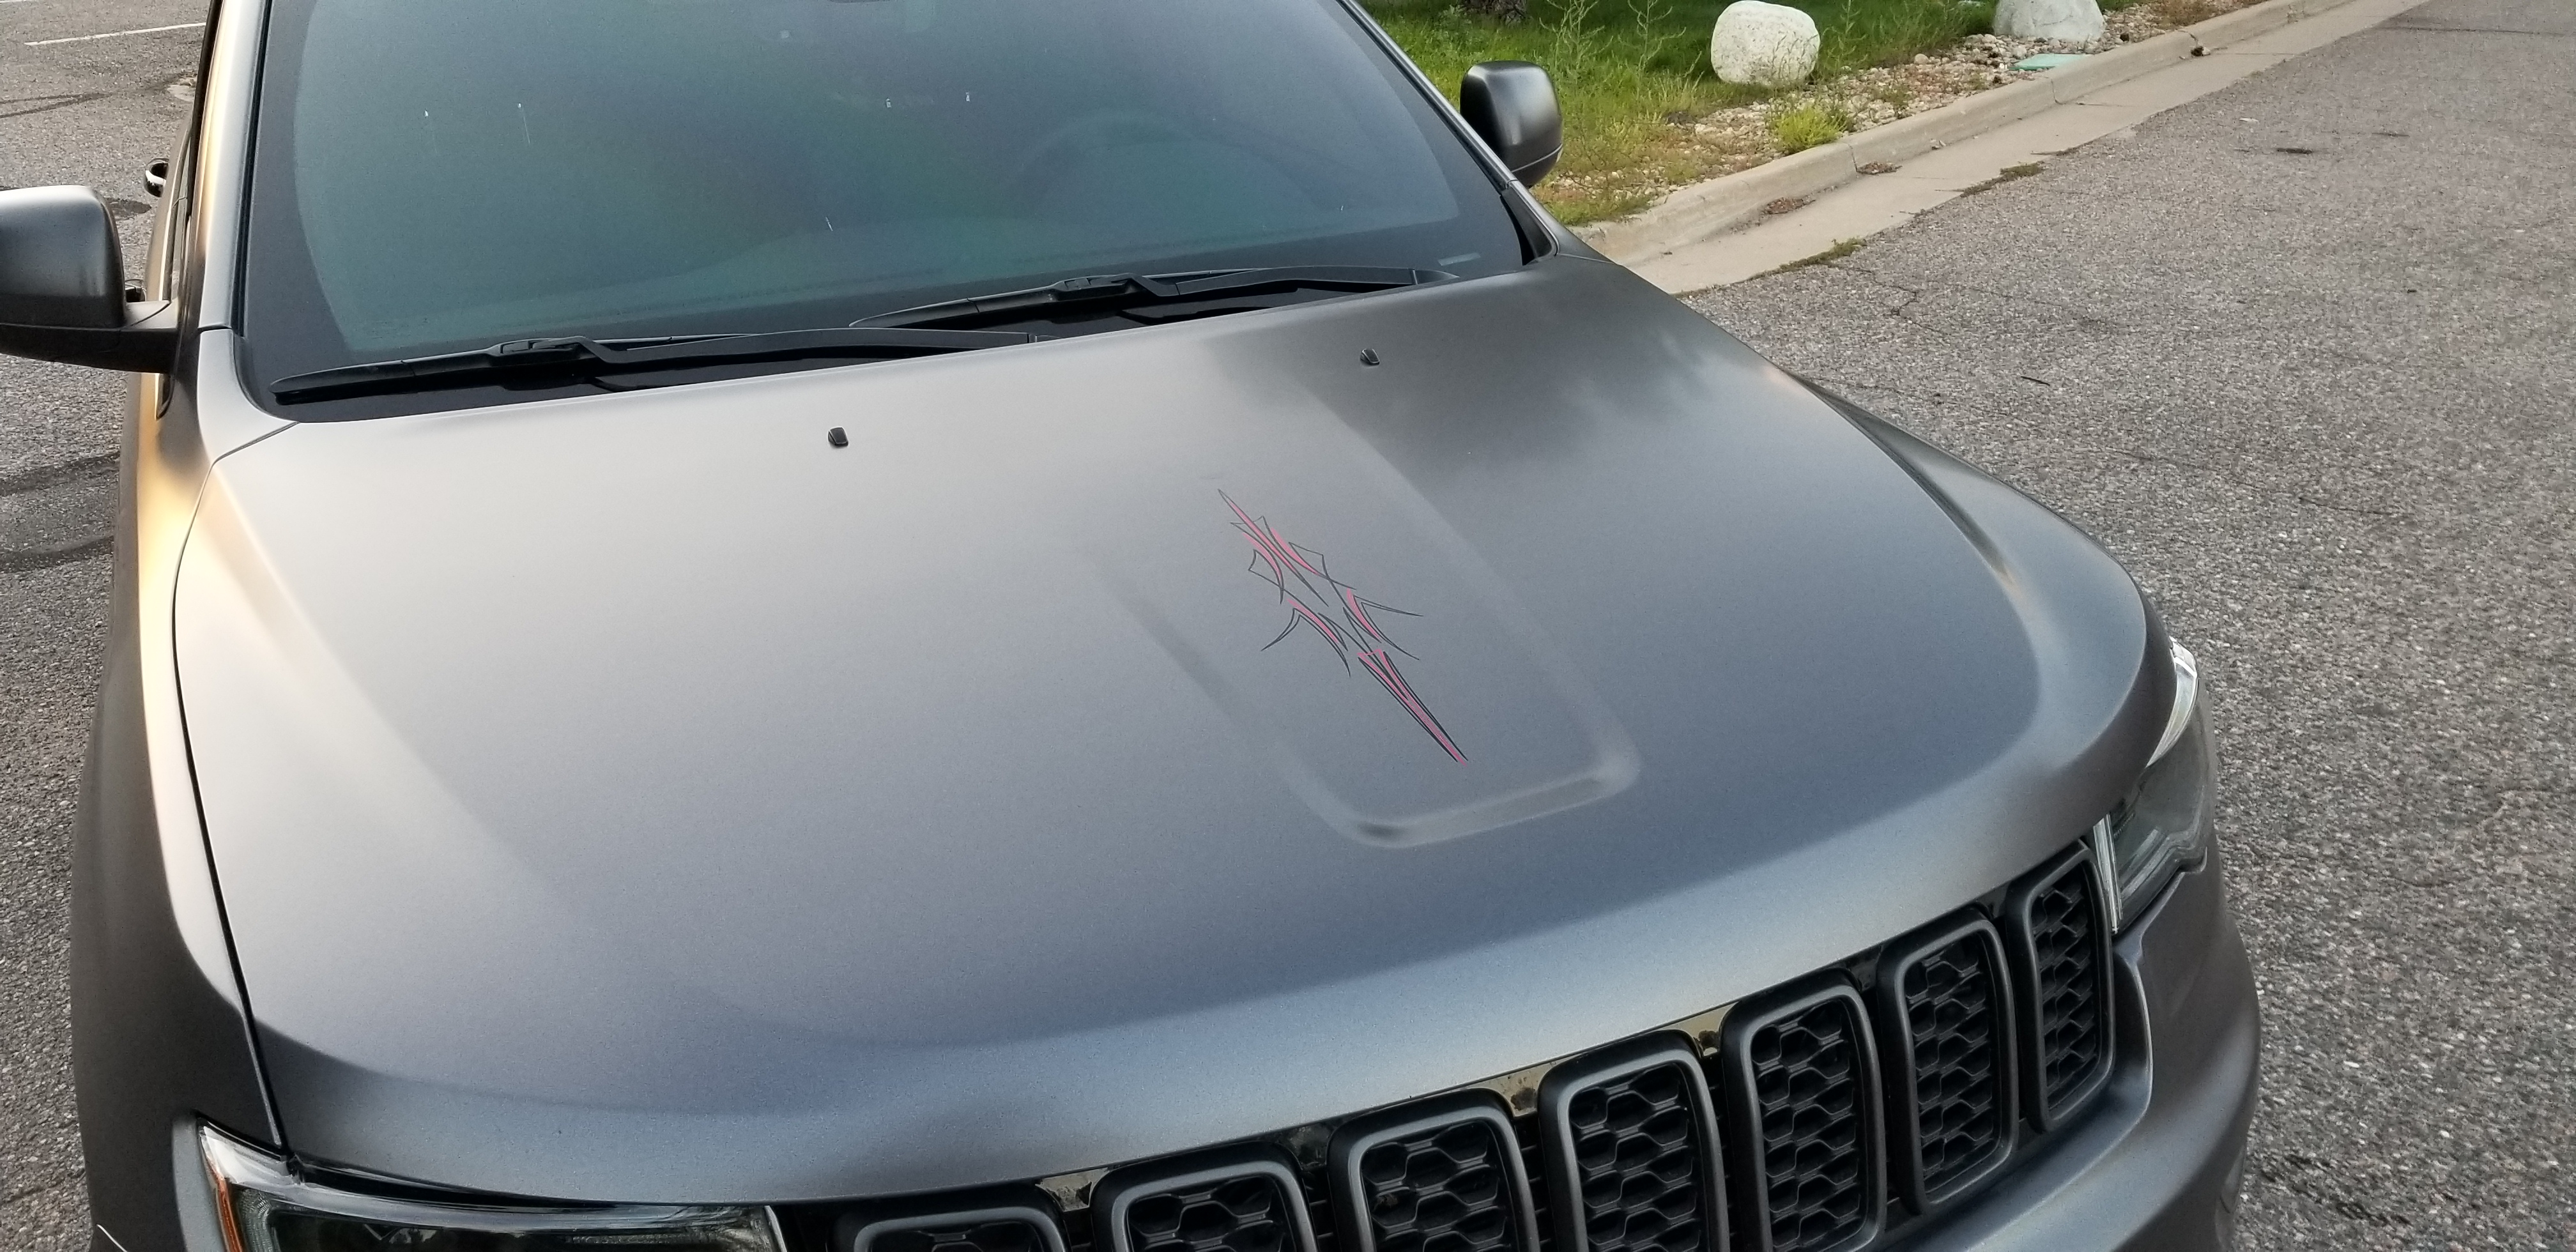 That's so cool, I'm getting it Tattooed! Satin Dark Grey Jeep Grand Cherokee Wrap